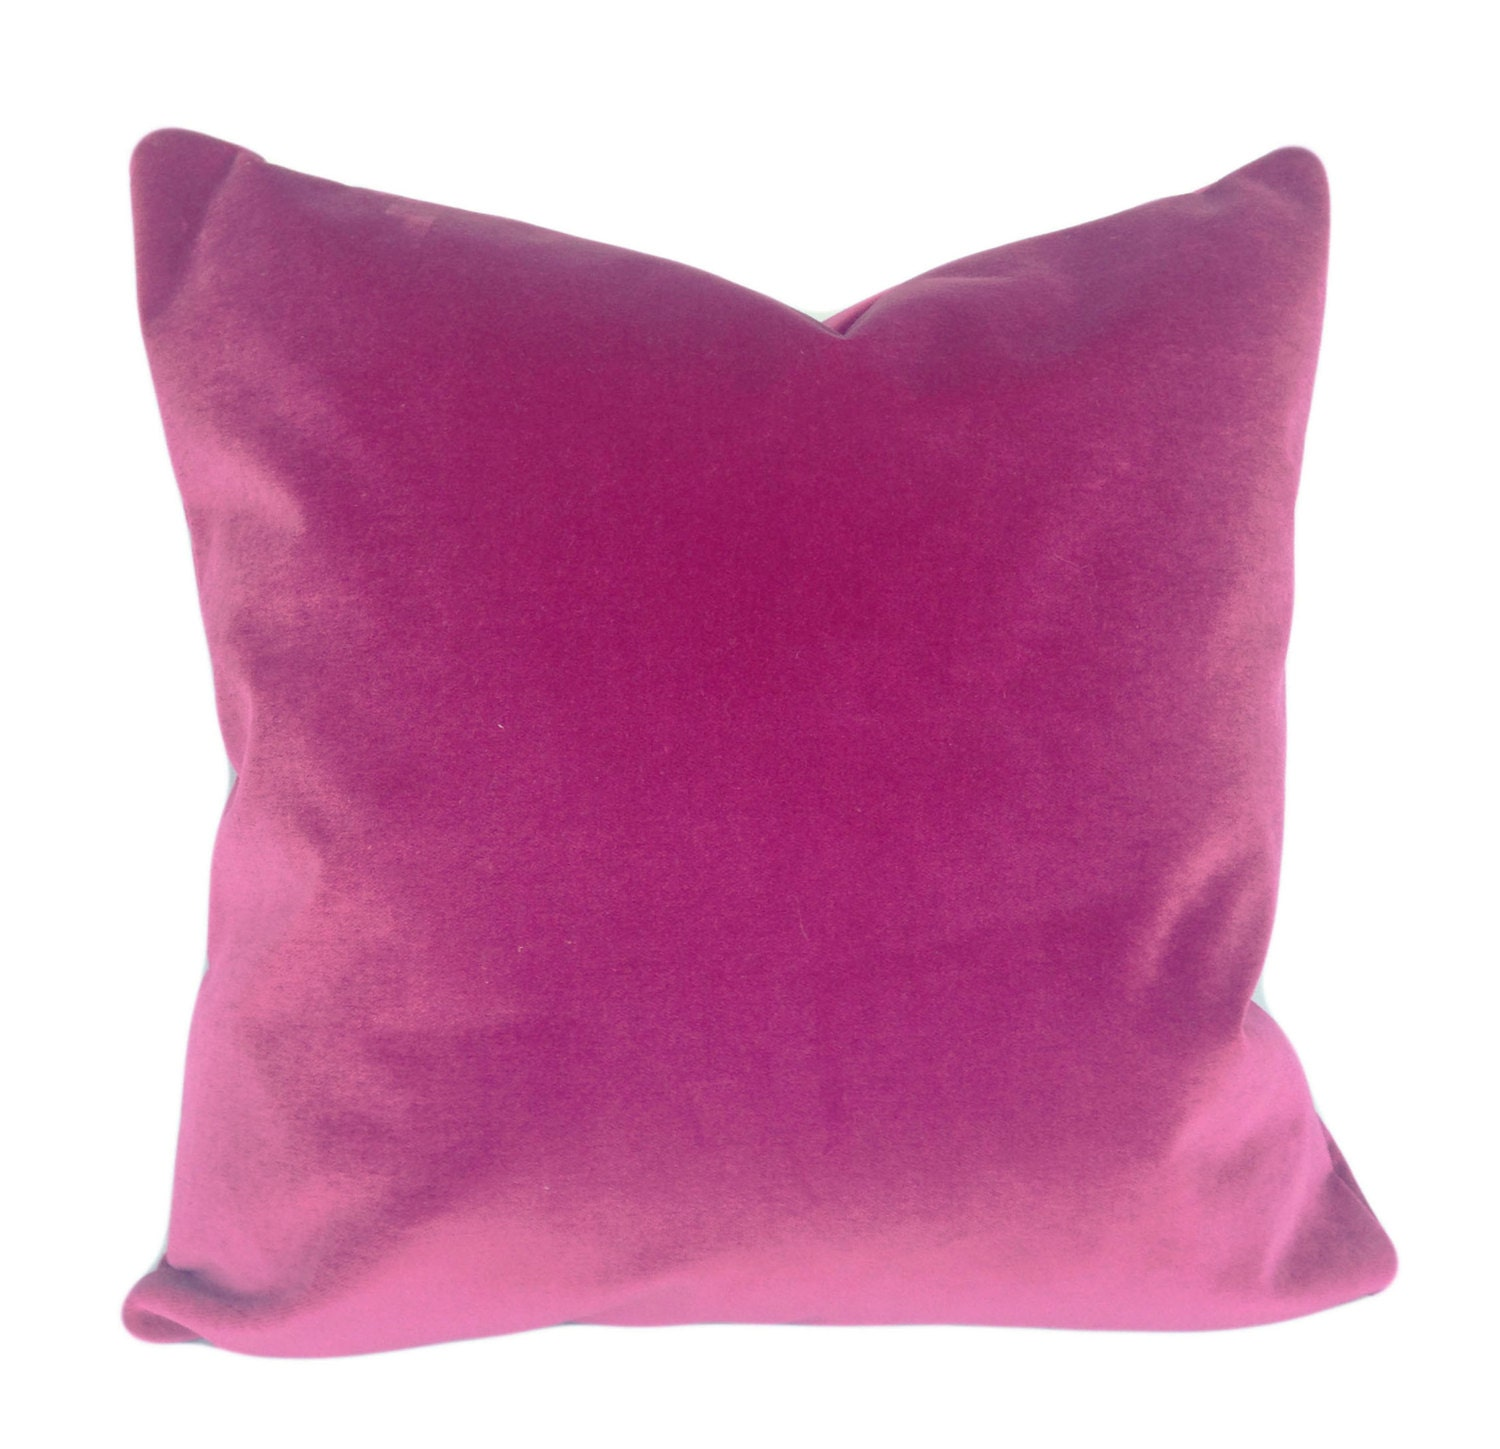 Throw Pillow Etsy : Pink Velvet Pillow Cover Throw Pillow by PillowTimeGirls on Etsy